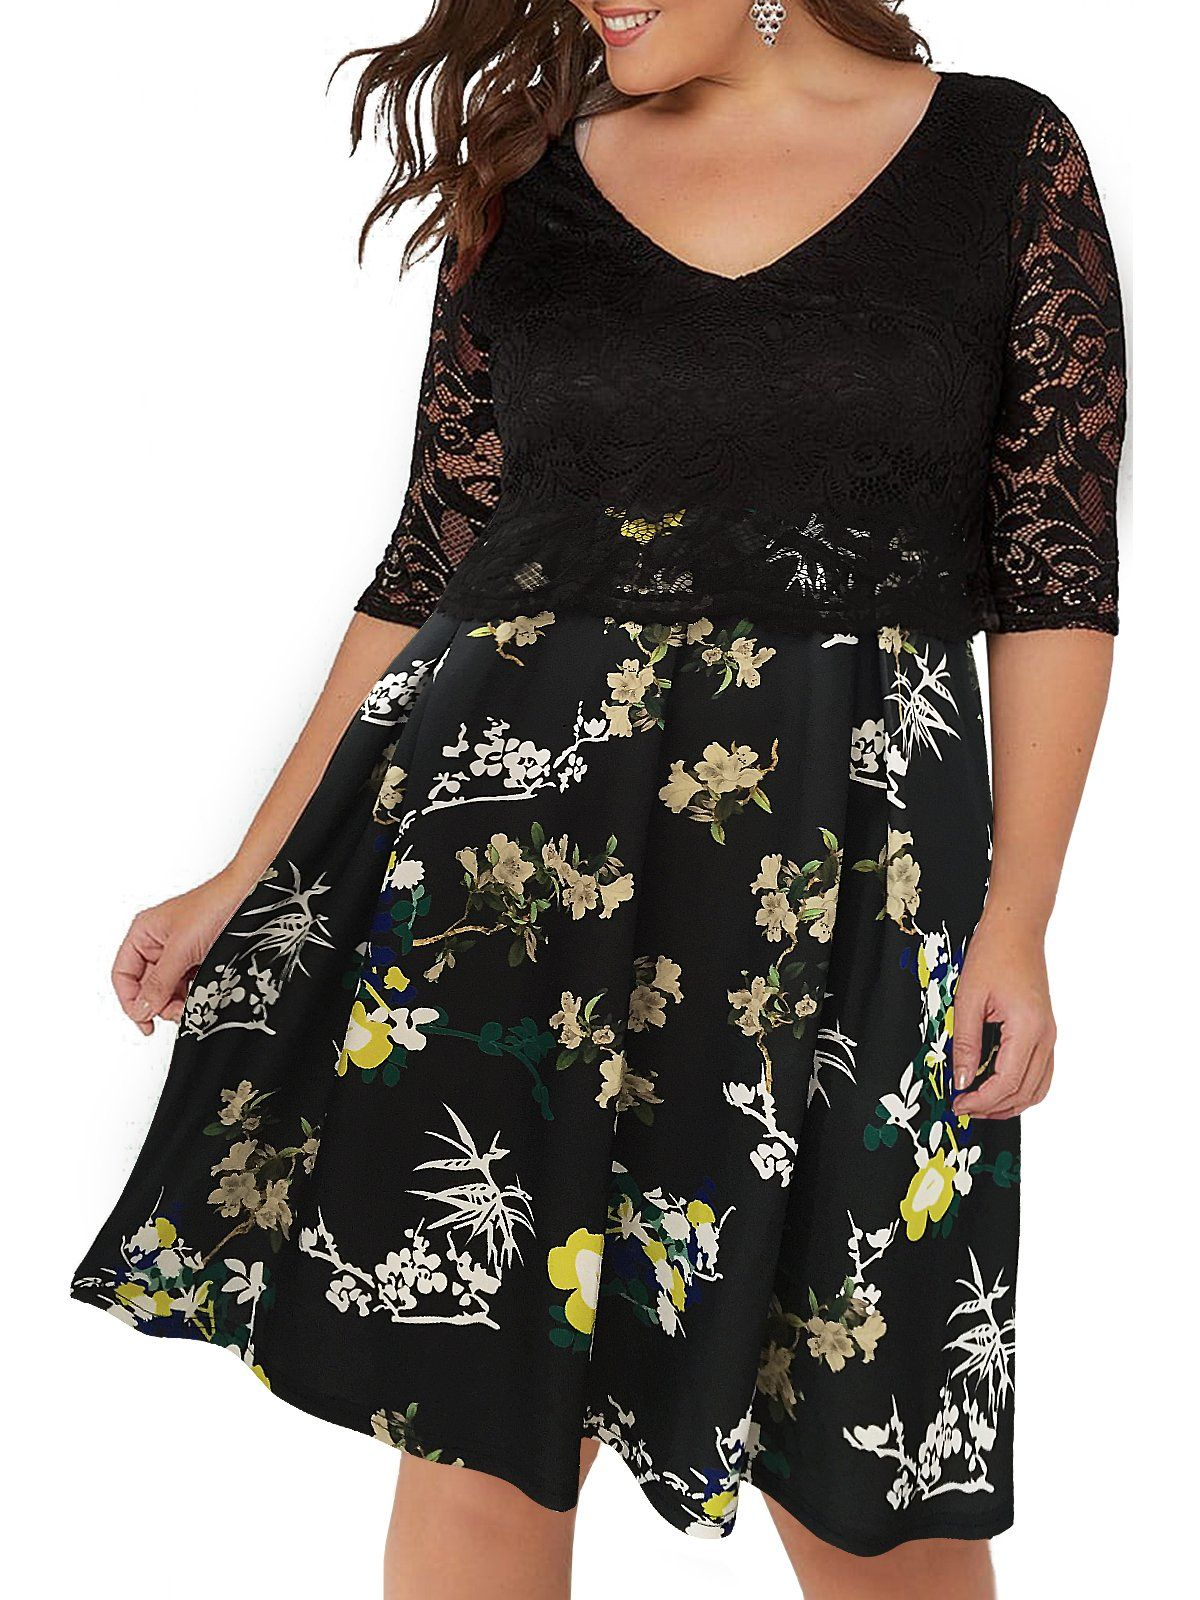 Green dress with lace overlay  Nemidor Womens Lace Overlay  In  Style Half Sleeves Plus Size Midi